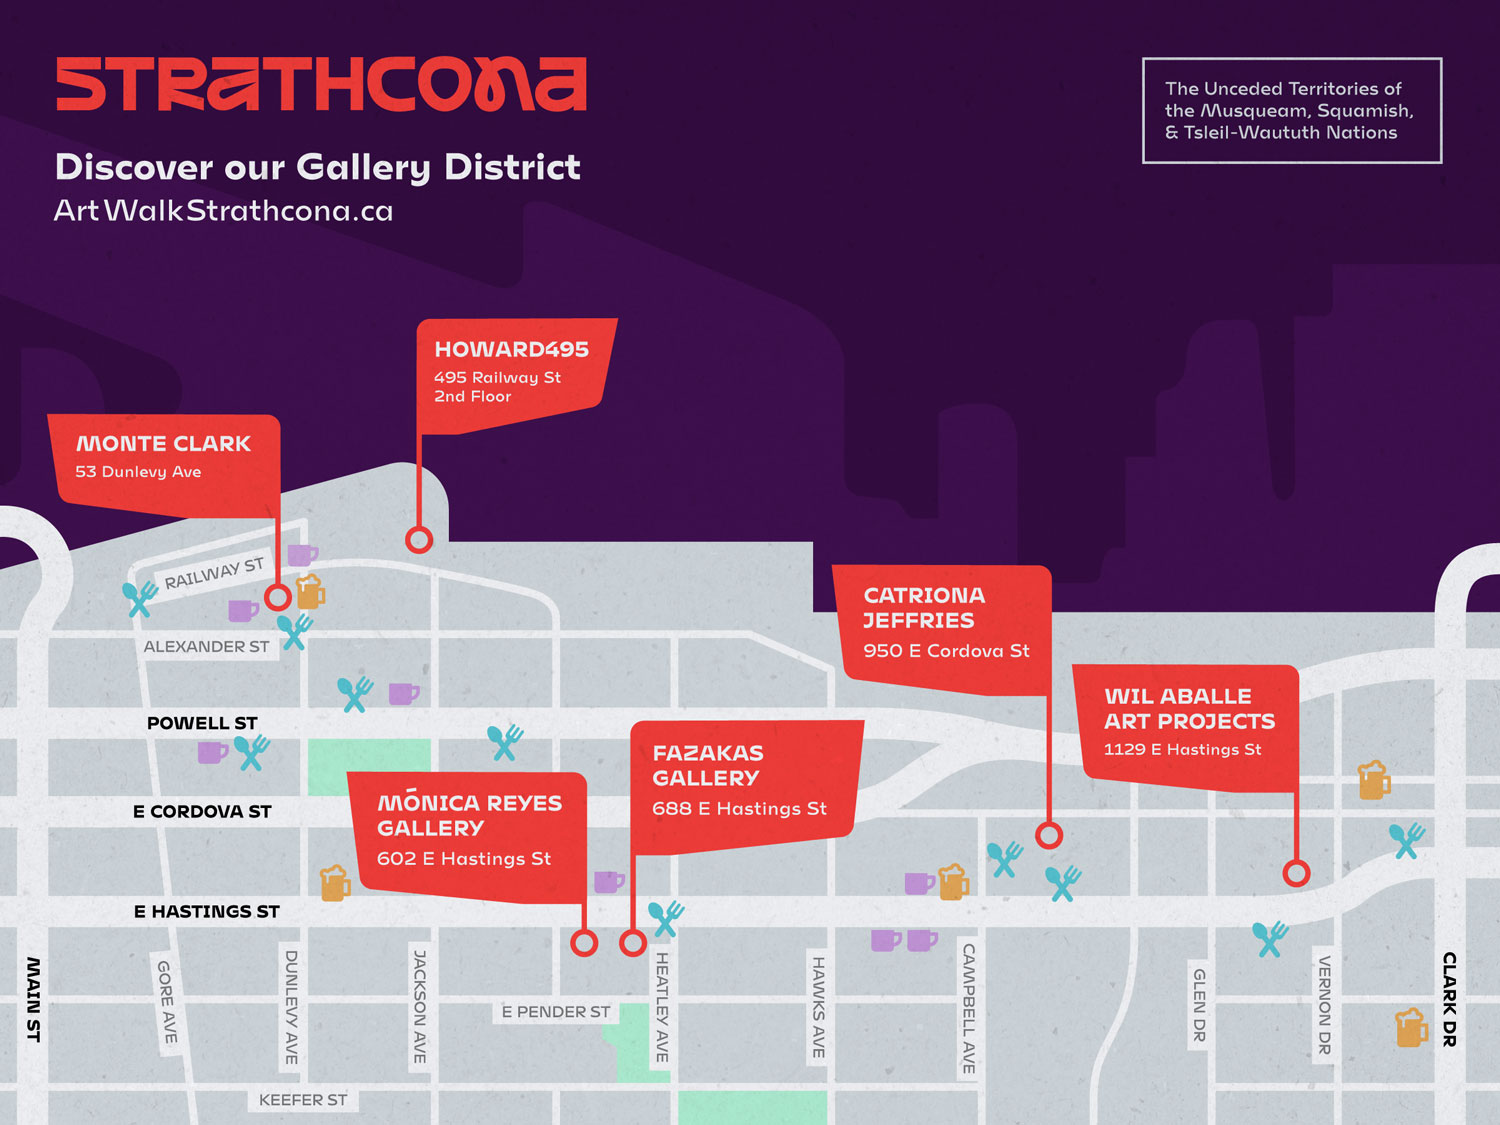 A Map of Strathcona showcasing the locations of our contemporary art galleries.